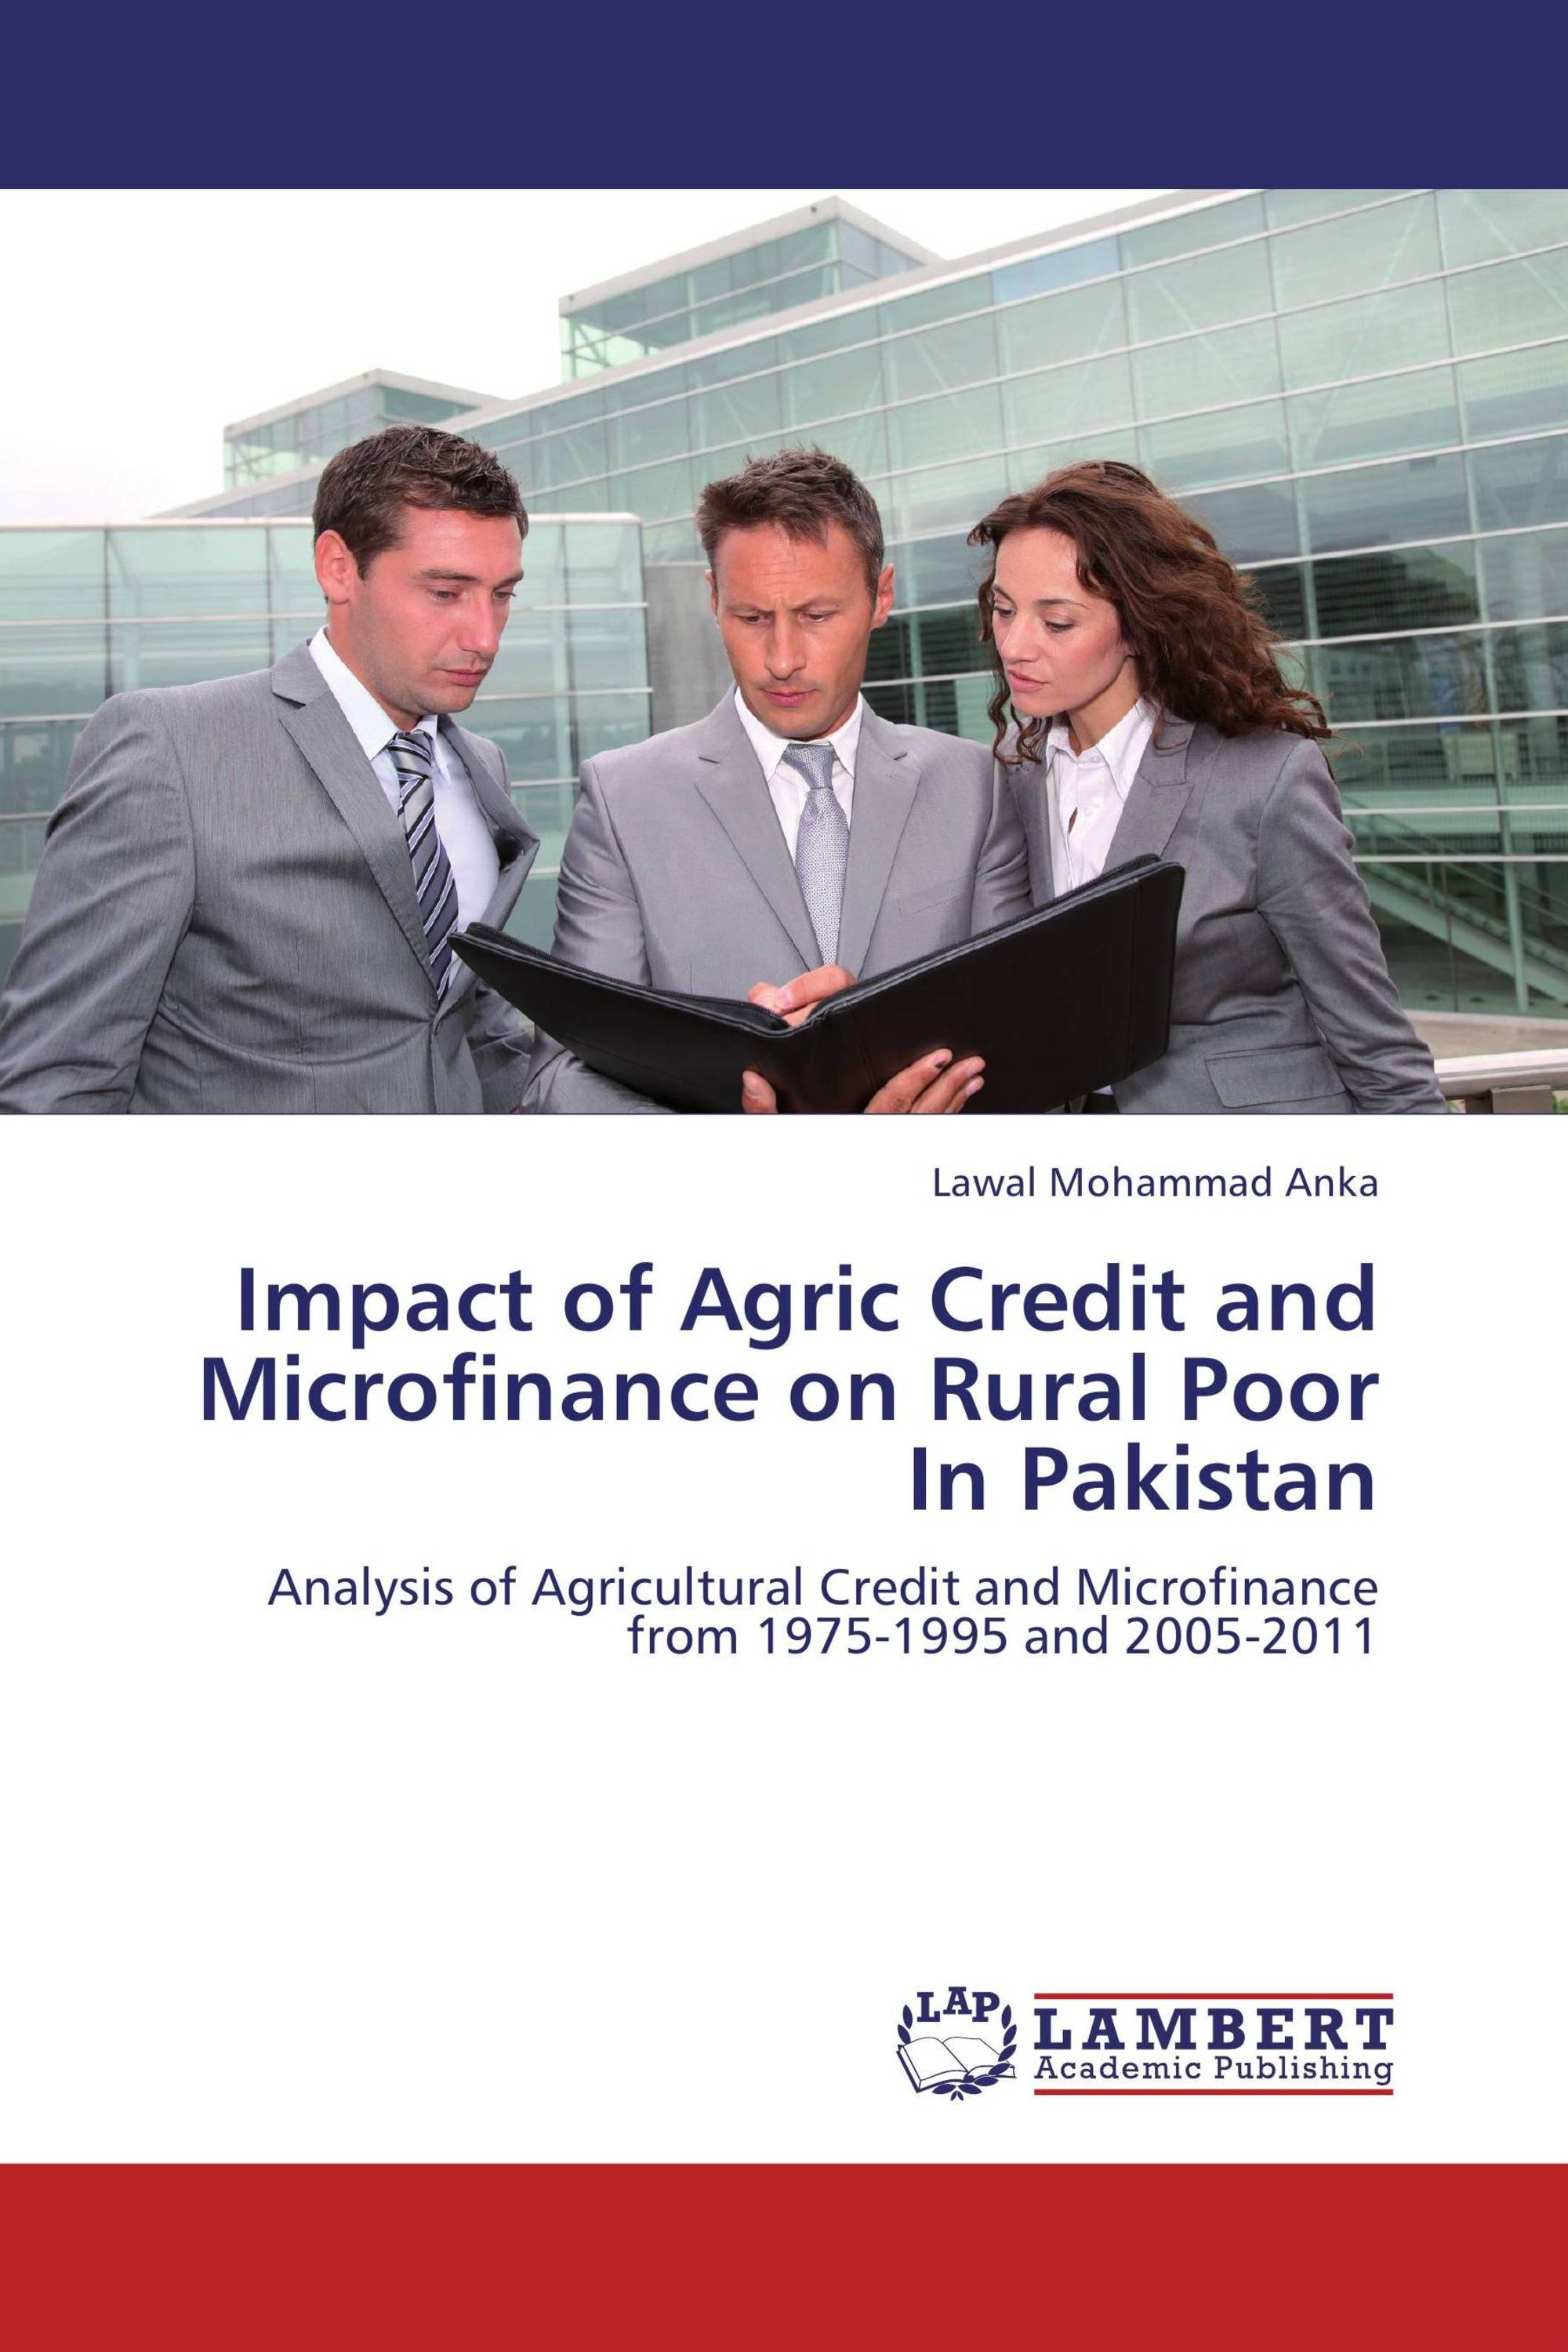 thesis microfinance in pakistan Micro finance to islamic micro finance: thesis akhuwat more than just microfinance – how pakistan's largest islamic microfinance institution supports one.